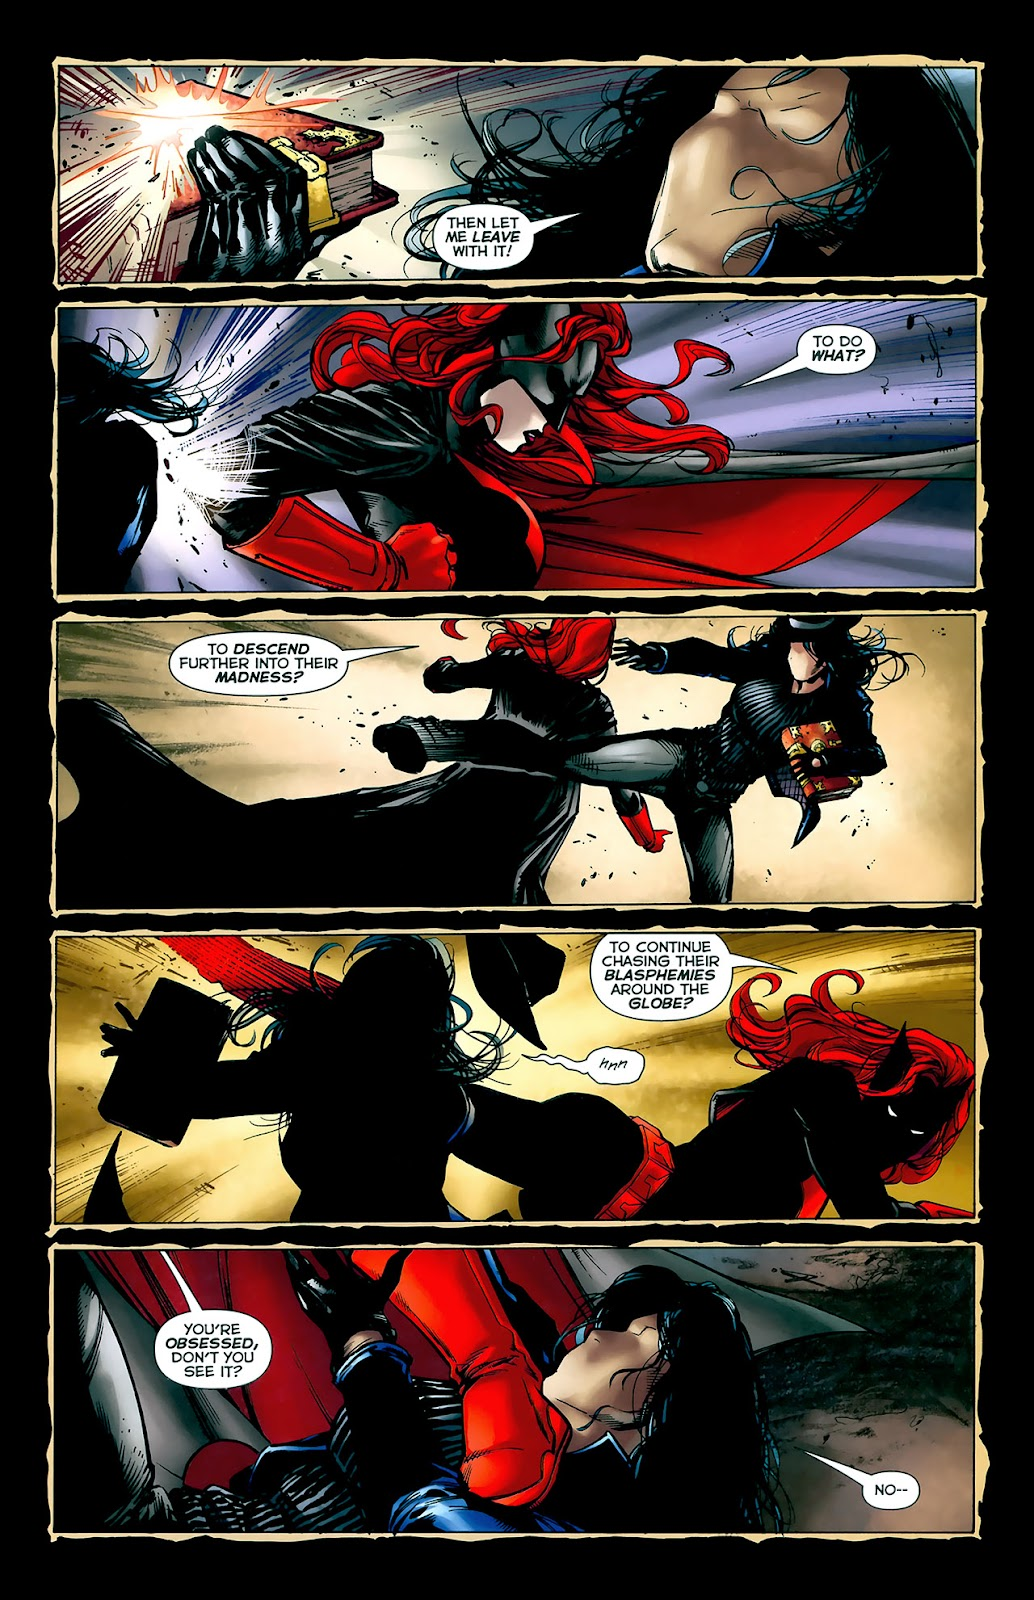 Crime Bible: The Five Lessons of Blood issue 3 - Page 19